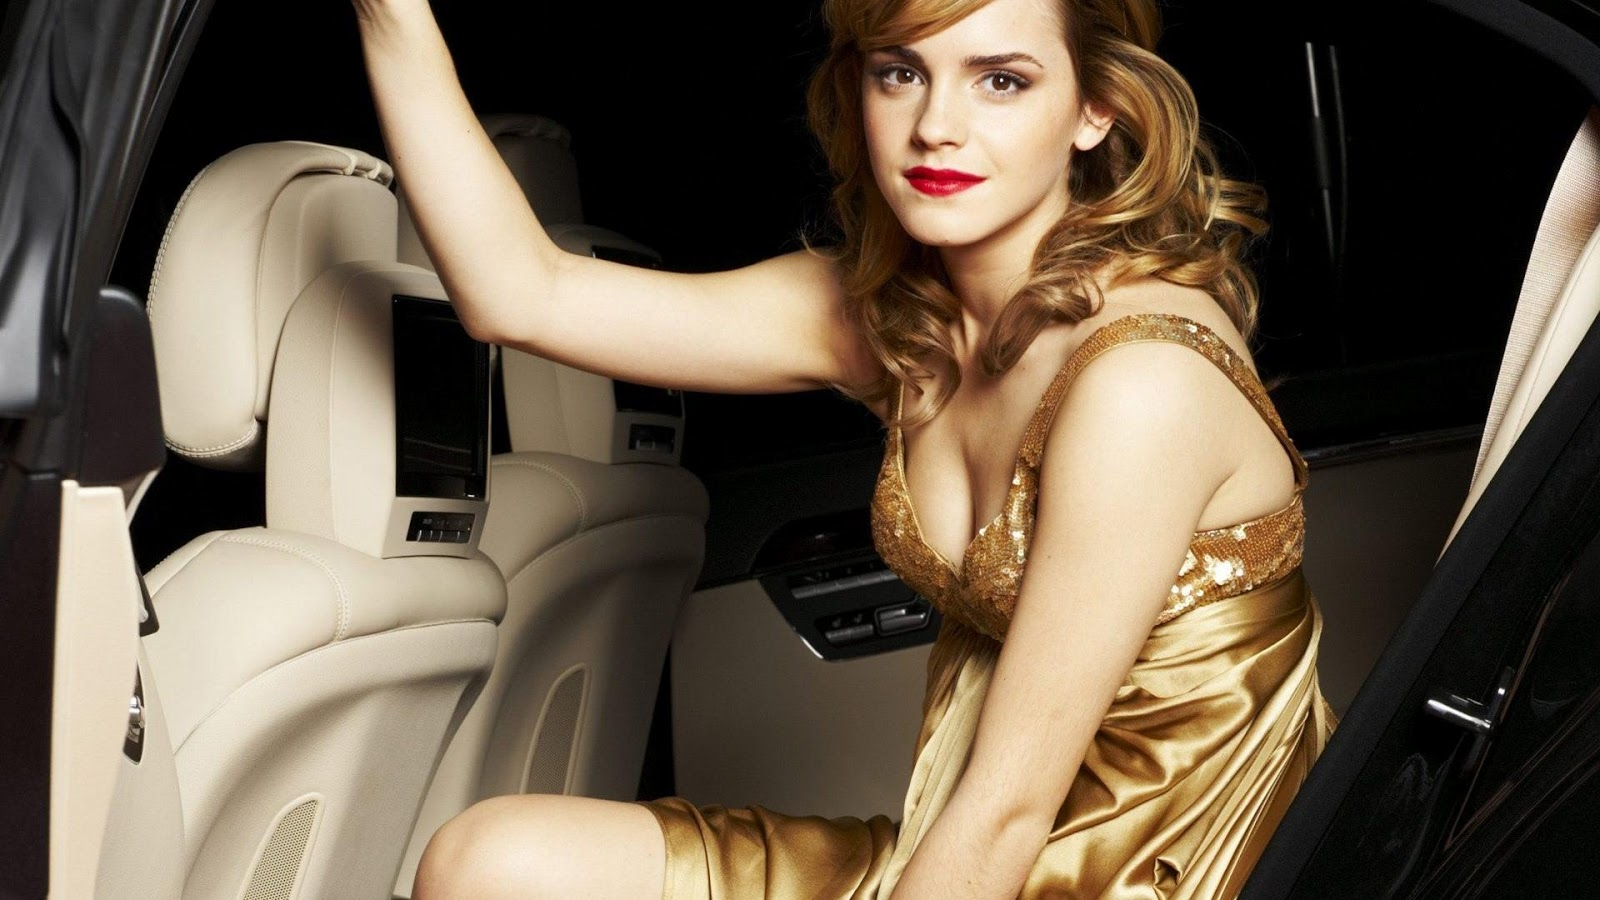 Swimsuit Issue, Emma Watson pics, pictures, biography, video, related ...